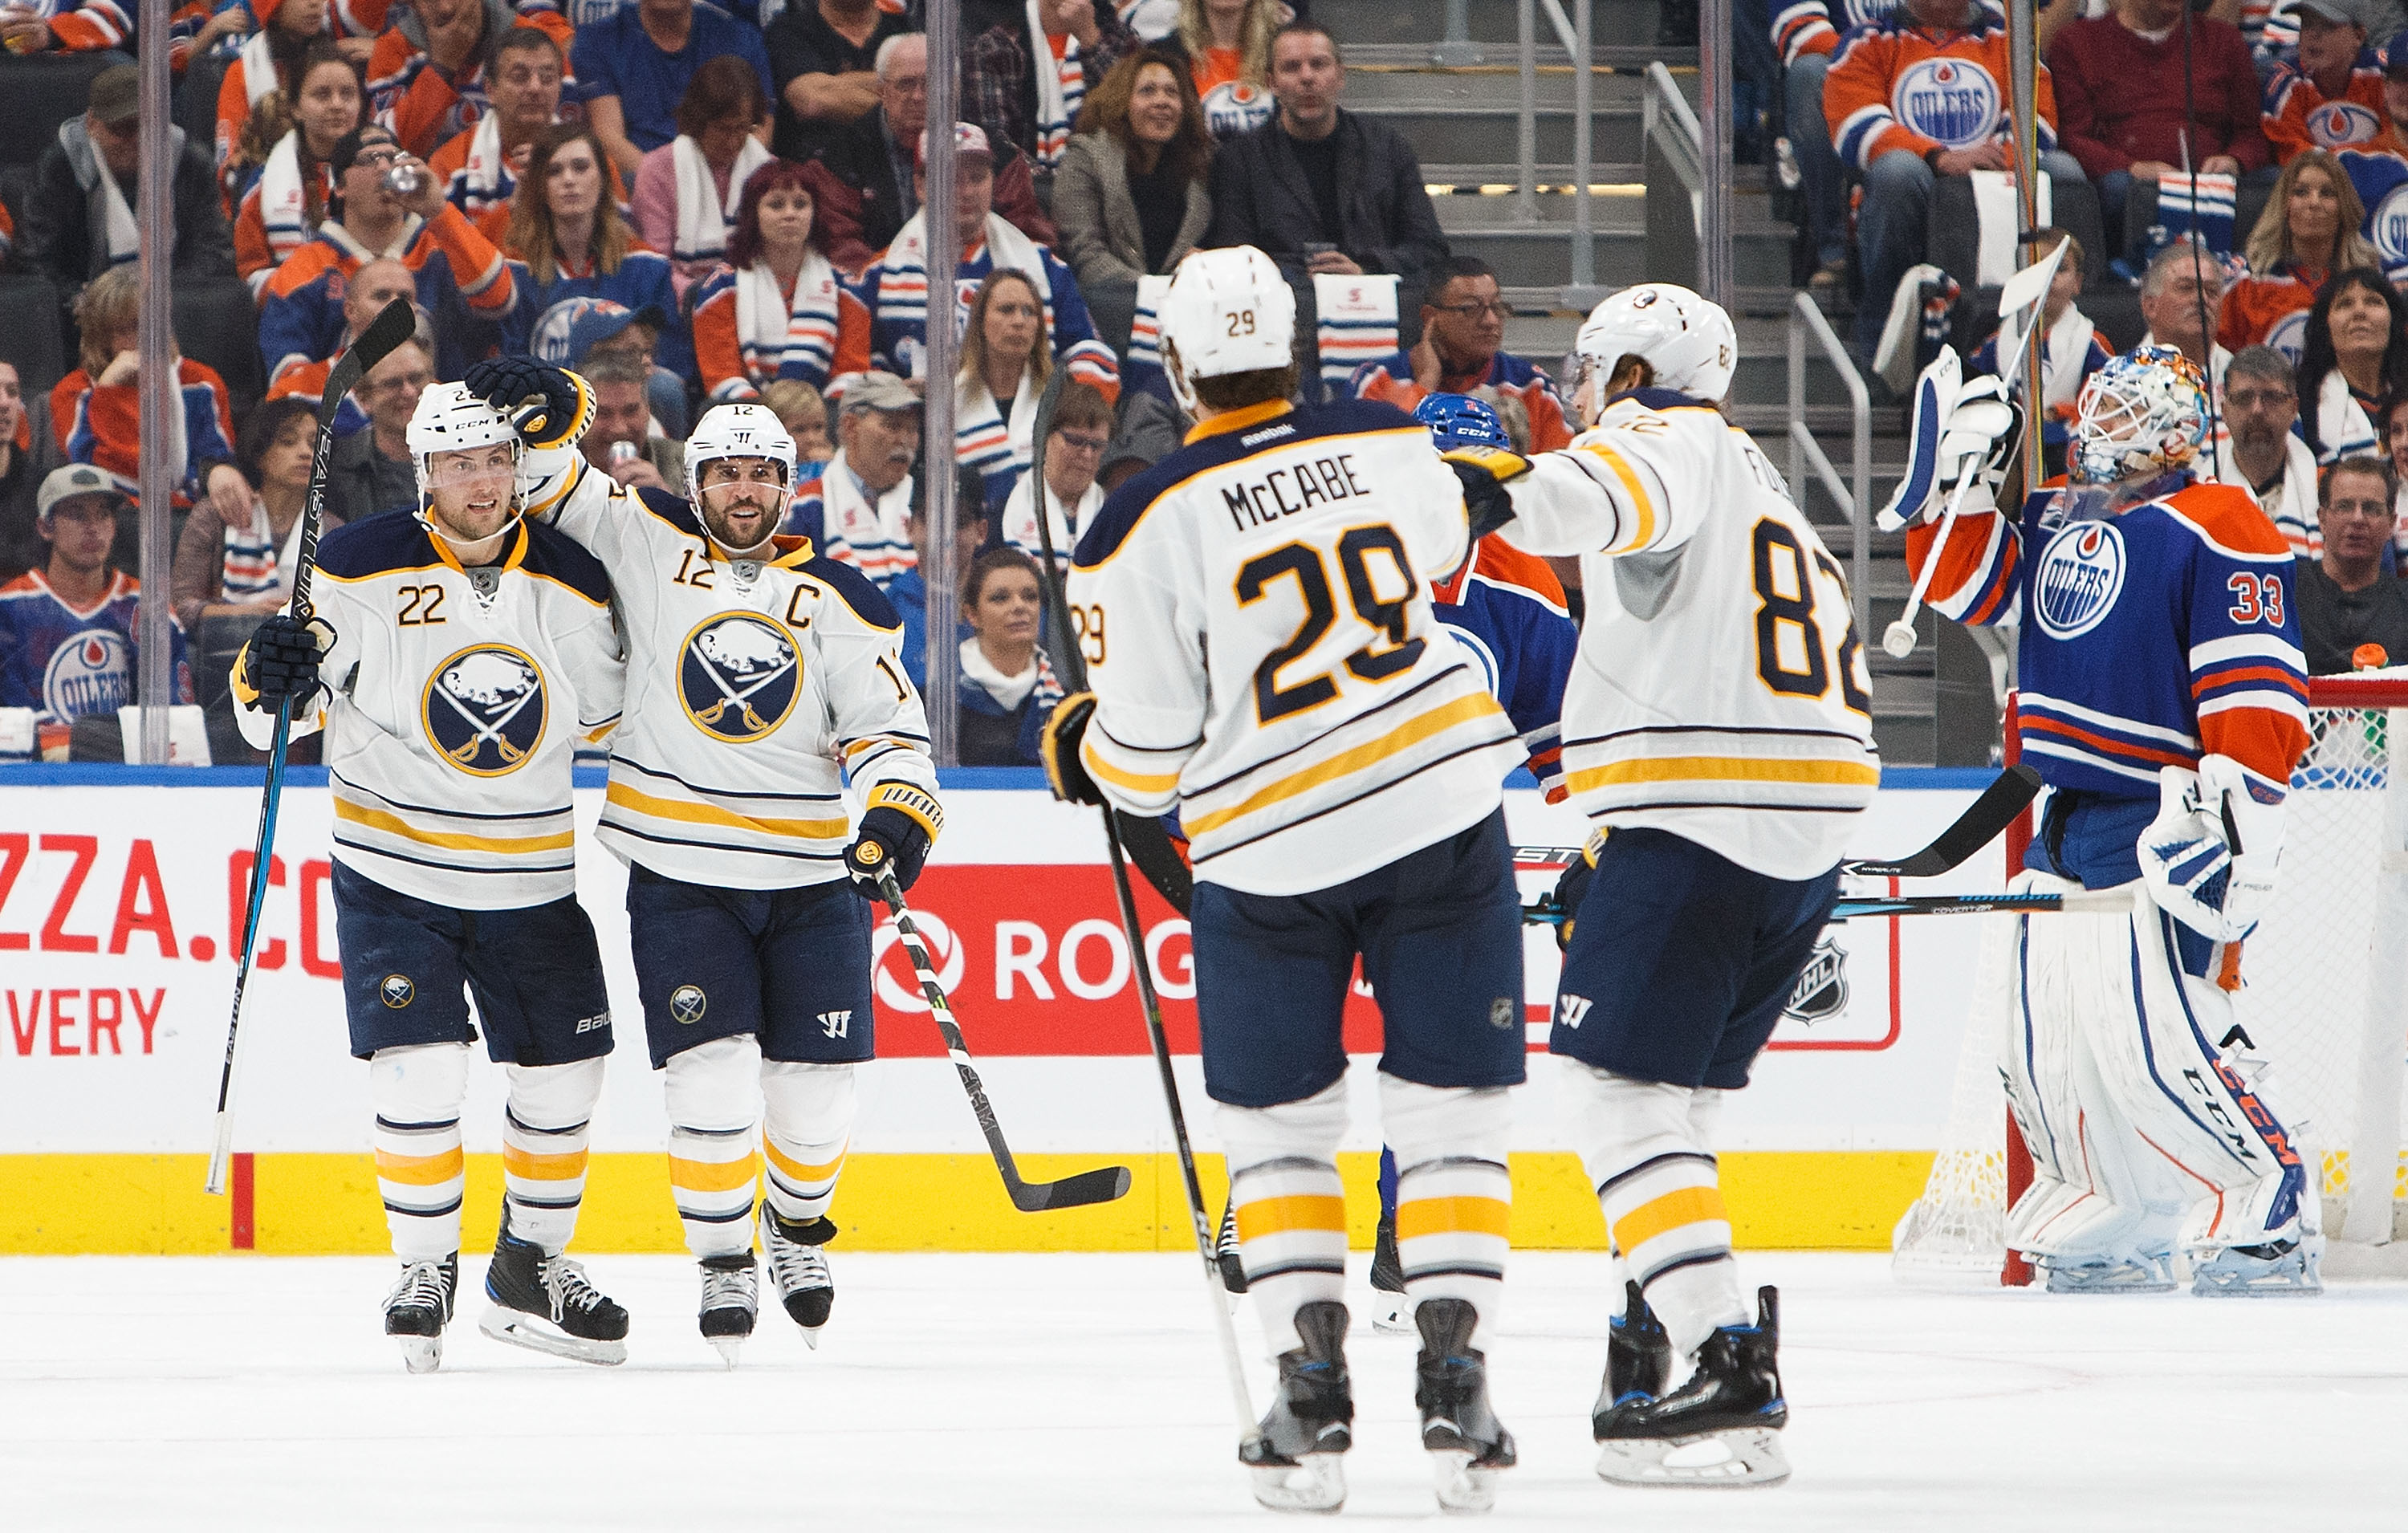 The Buffalo Sabres celebrate one of their six goals against the Edmonton Oilers. (Getty Images)